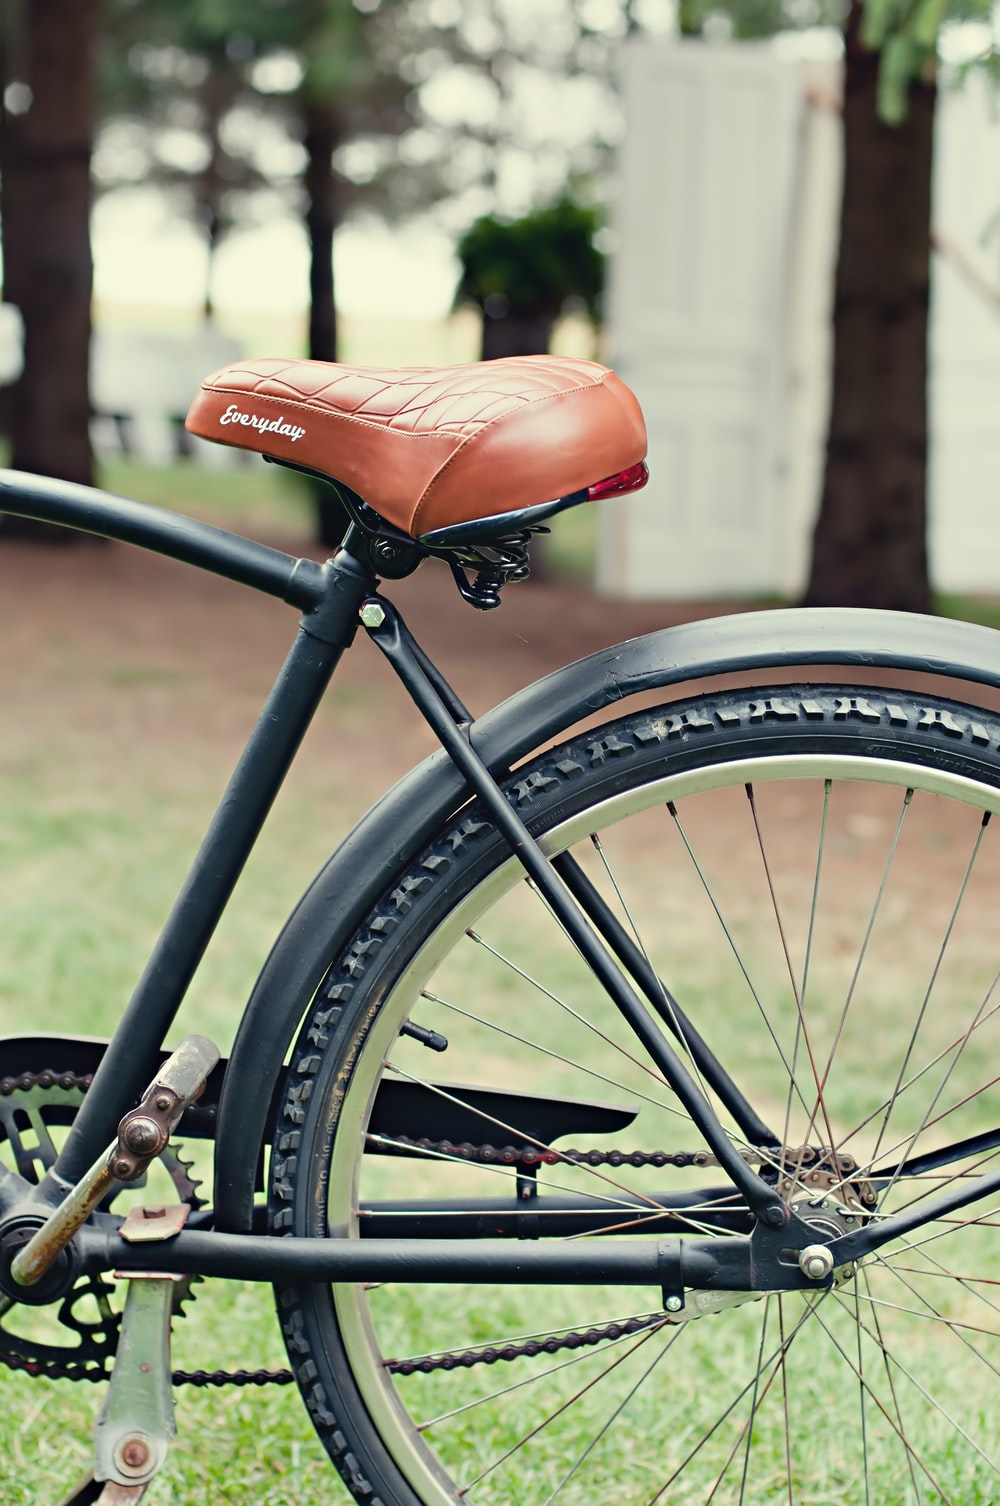 close view of bike with brown saddle